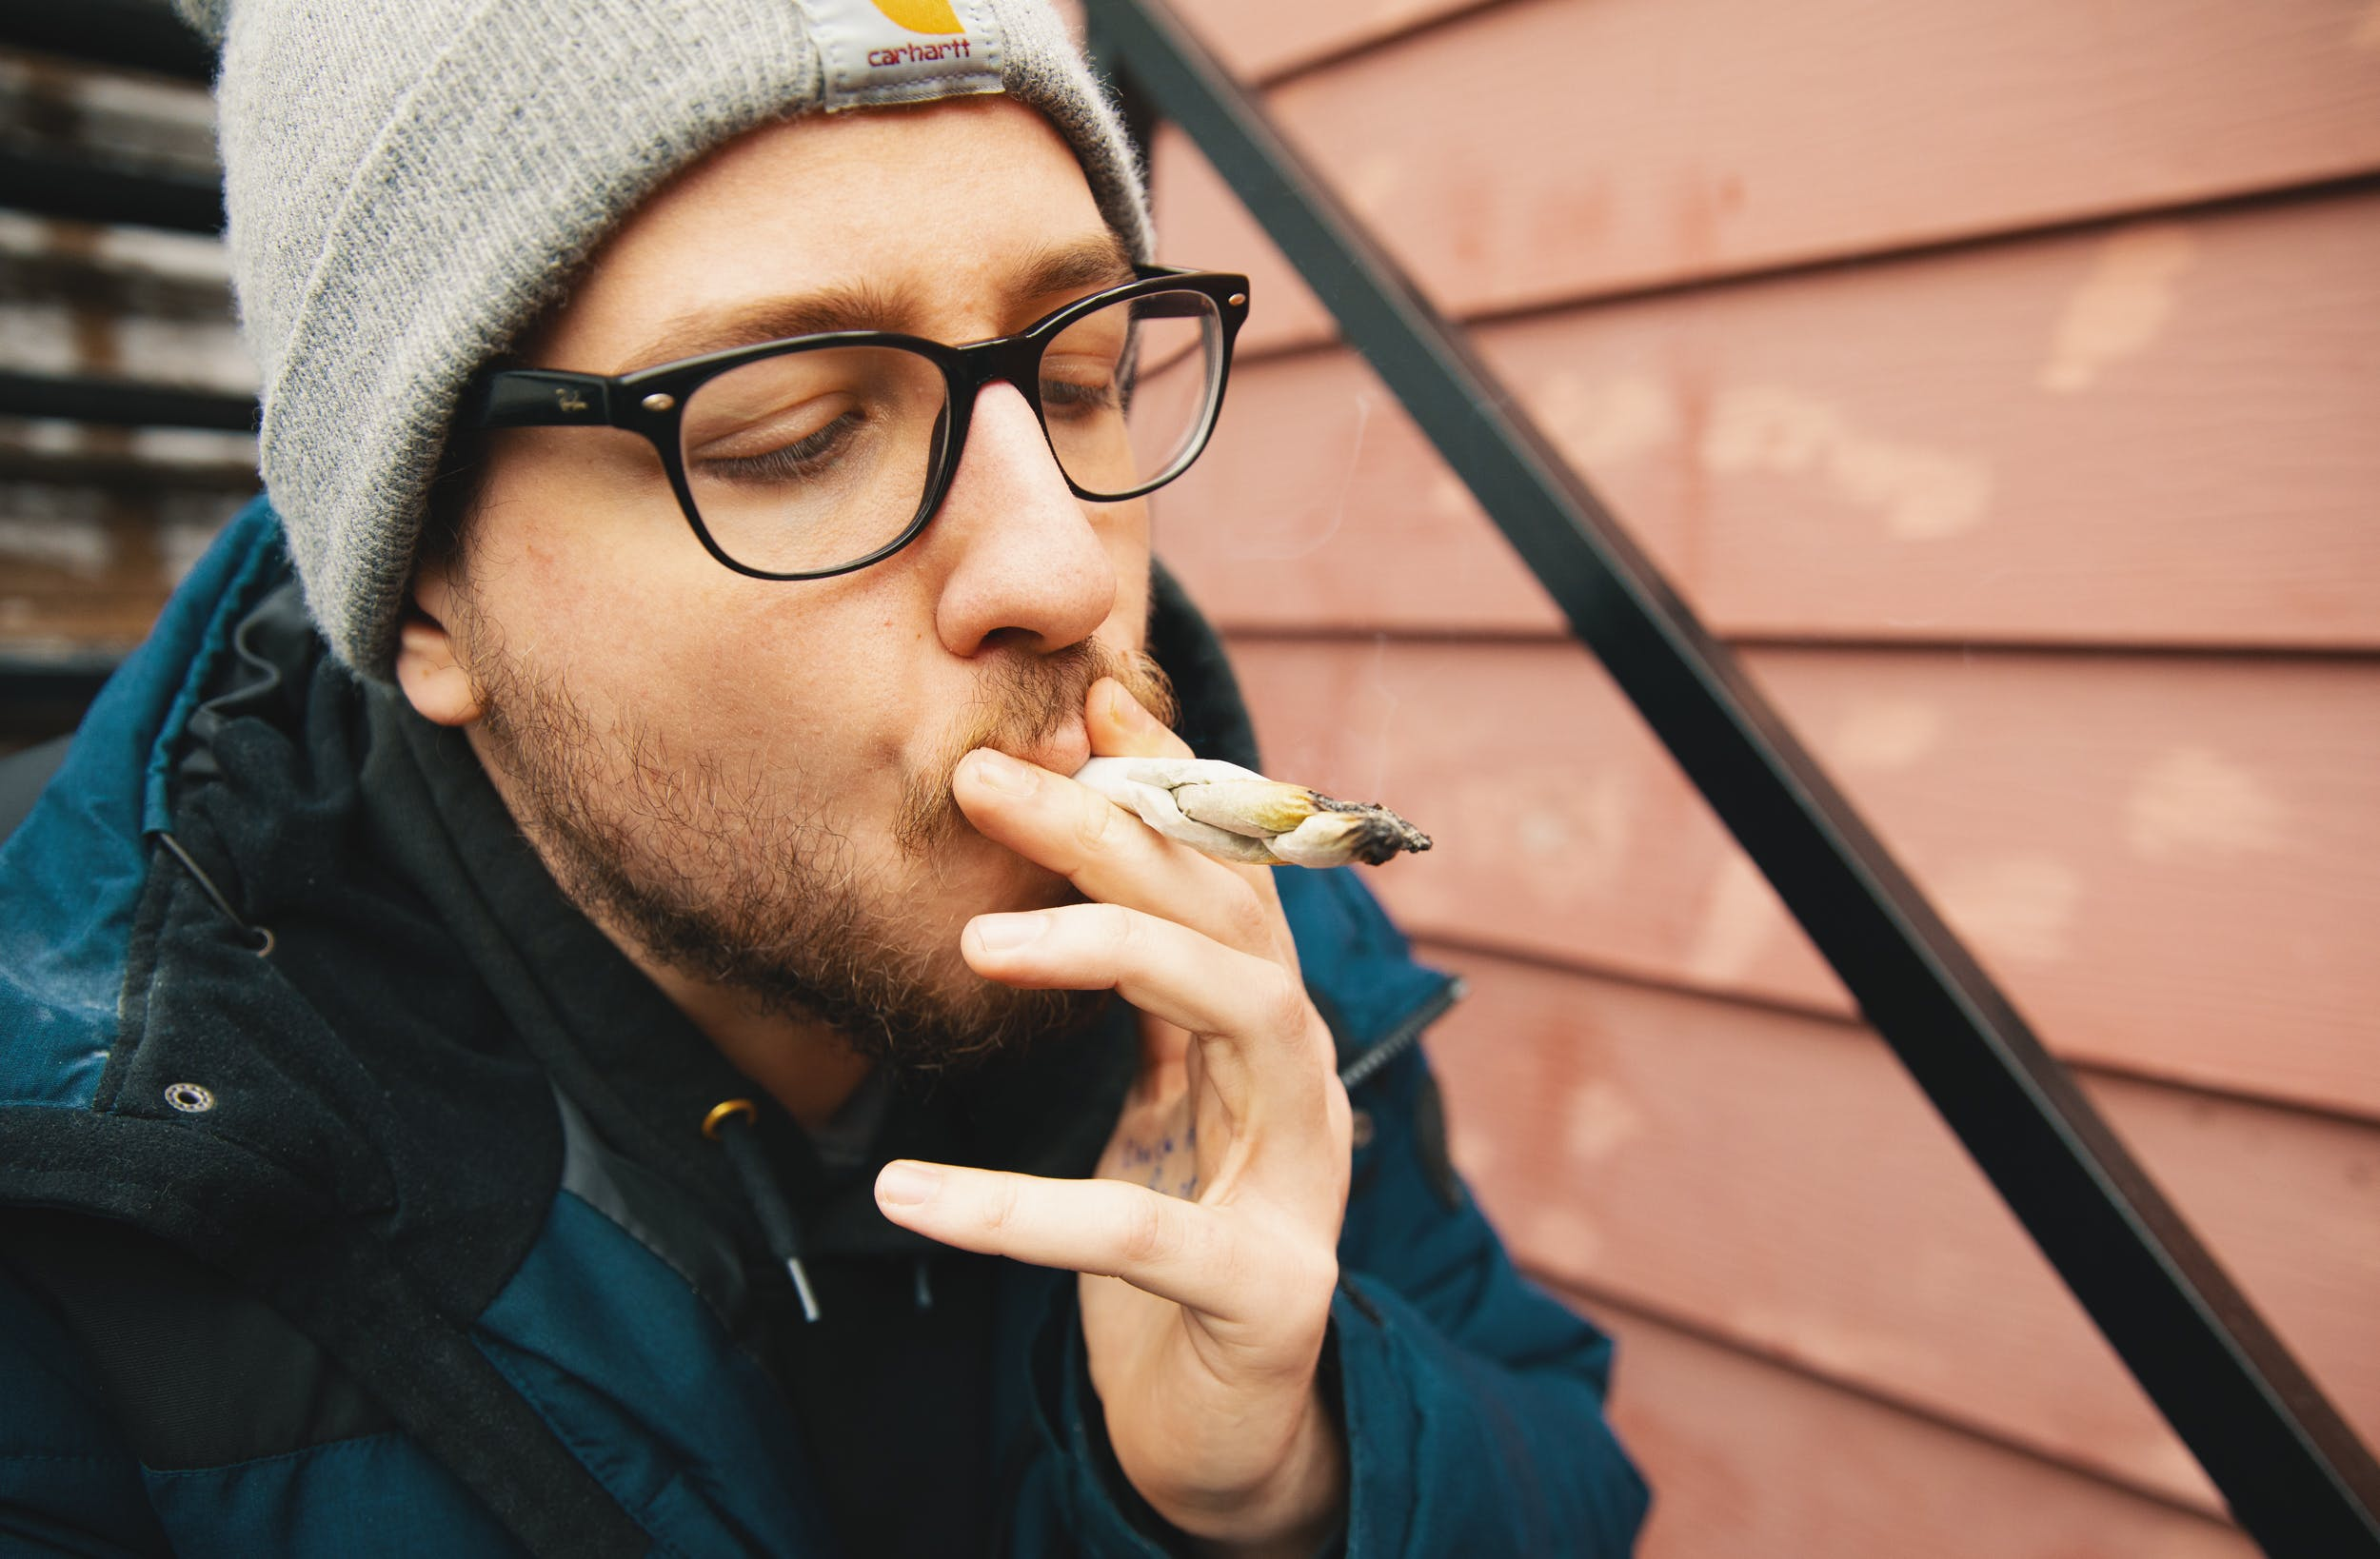 After learning how to roll a braided joint, a man smokes weed on some steps.